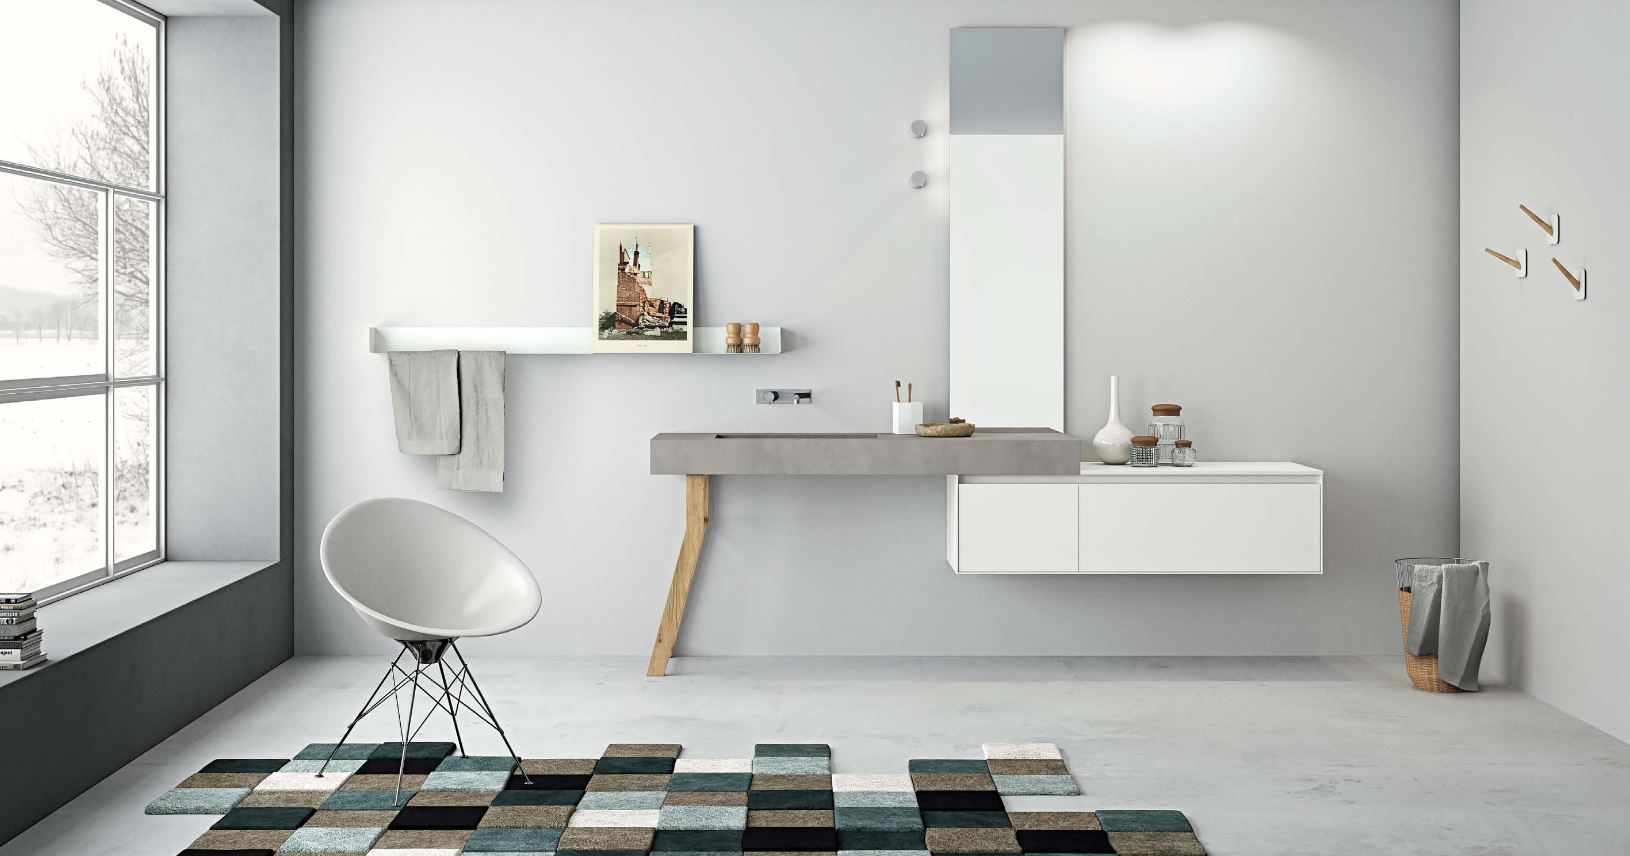 meuble salle de bain design blanc beton gris mb2 arr 1 2 porto venere. Black Bedroom Furniture Sets. Home Design Ideas